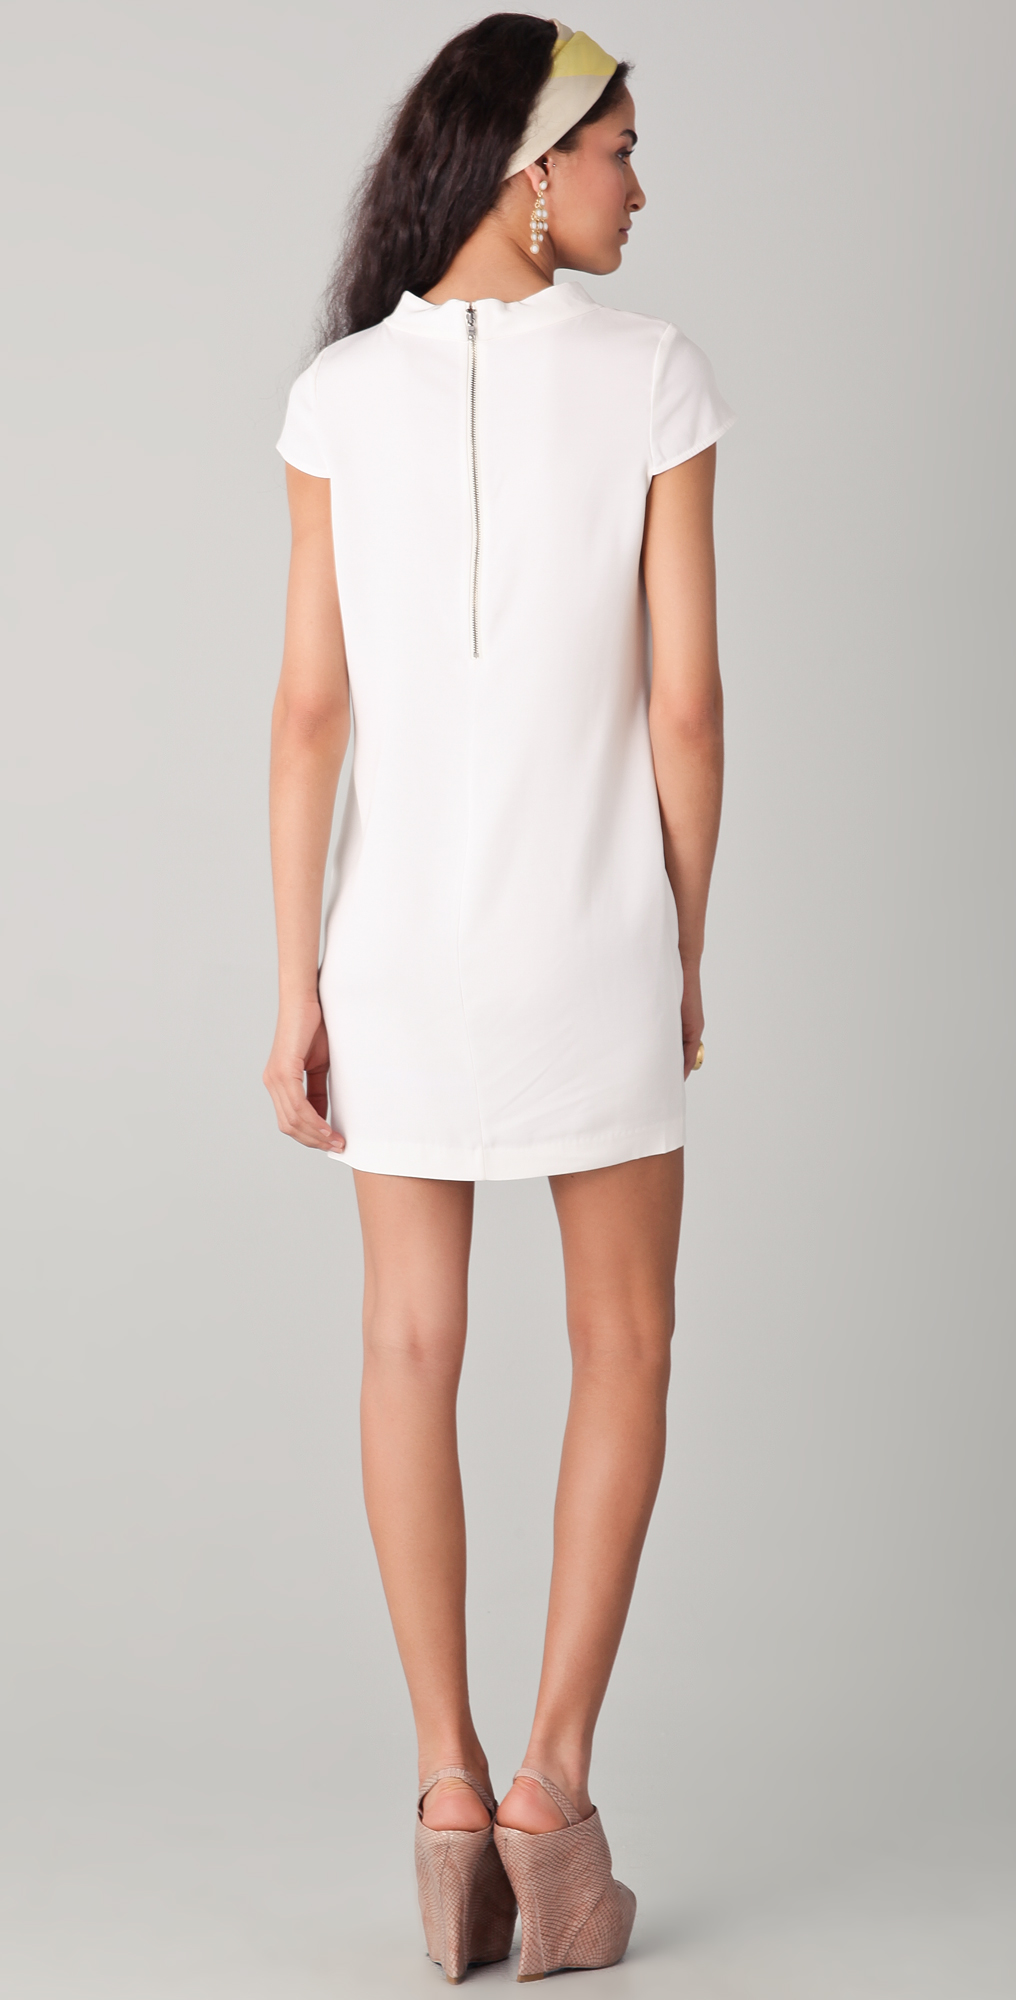 dd99b566b20 alice + olivia Diaz Boxy Shift Dress